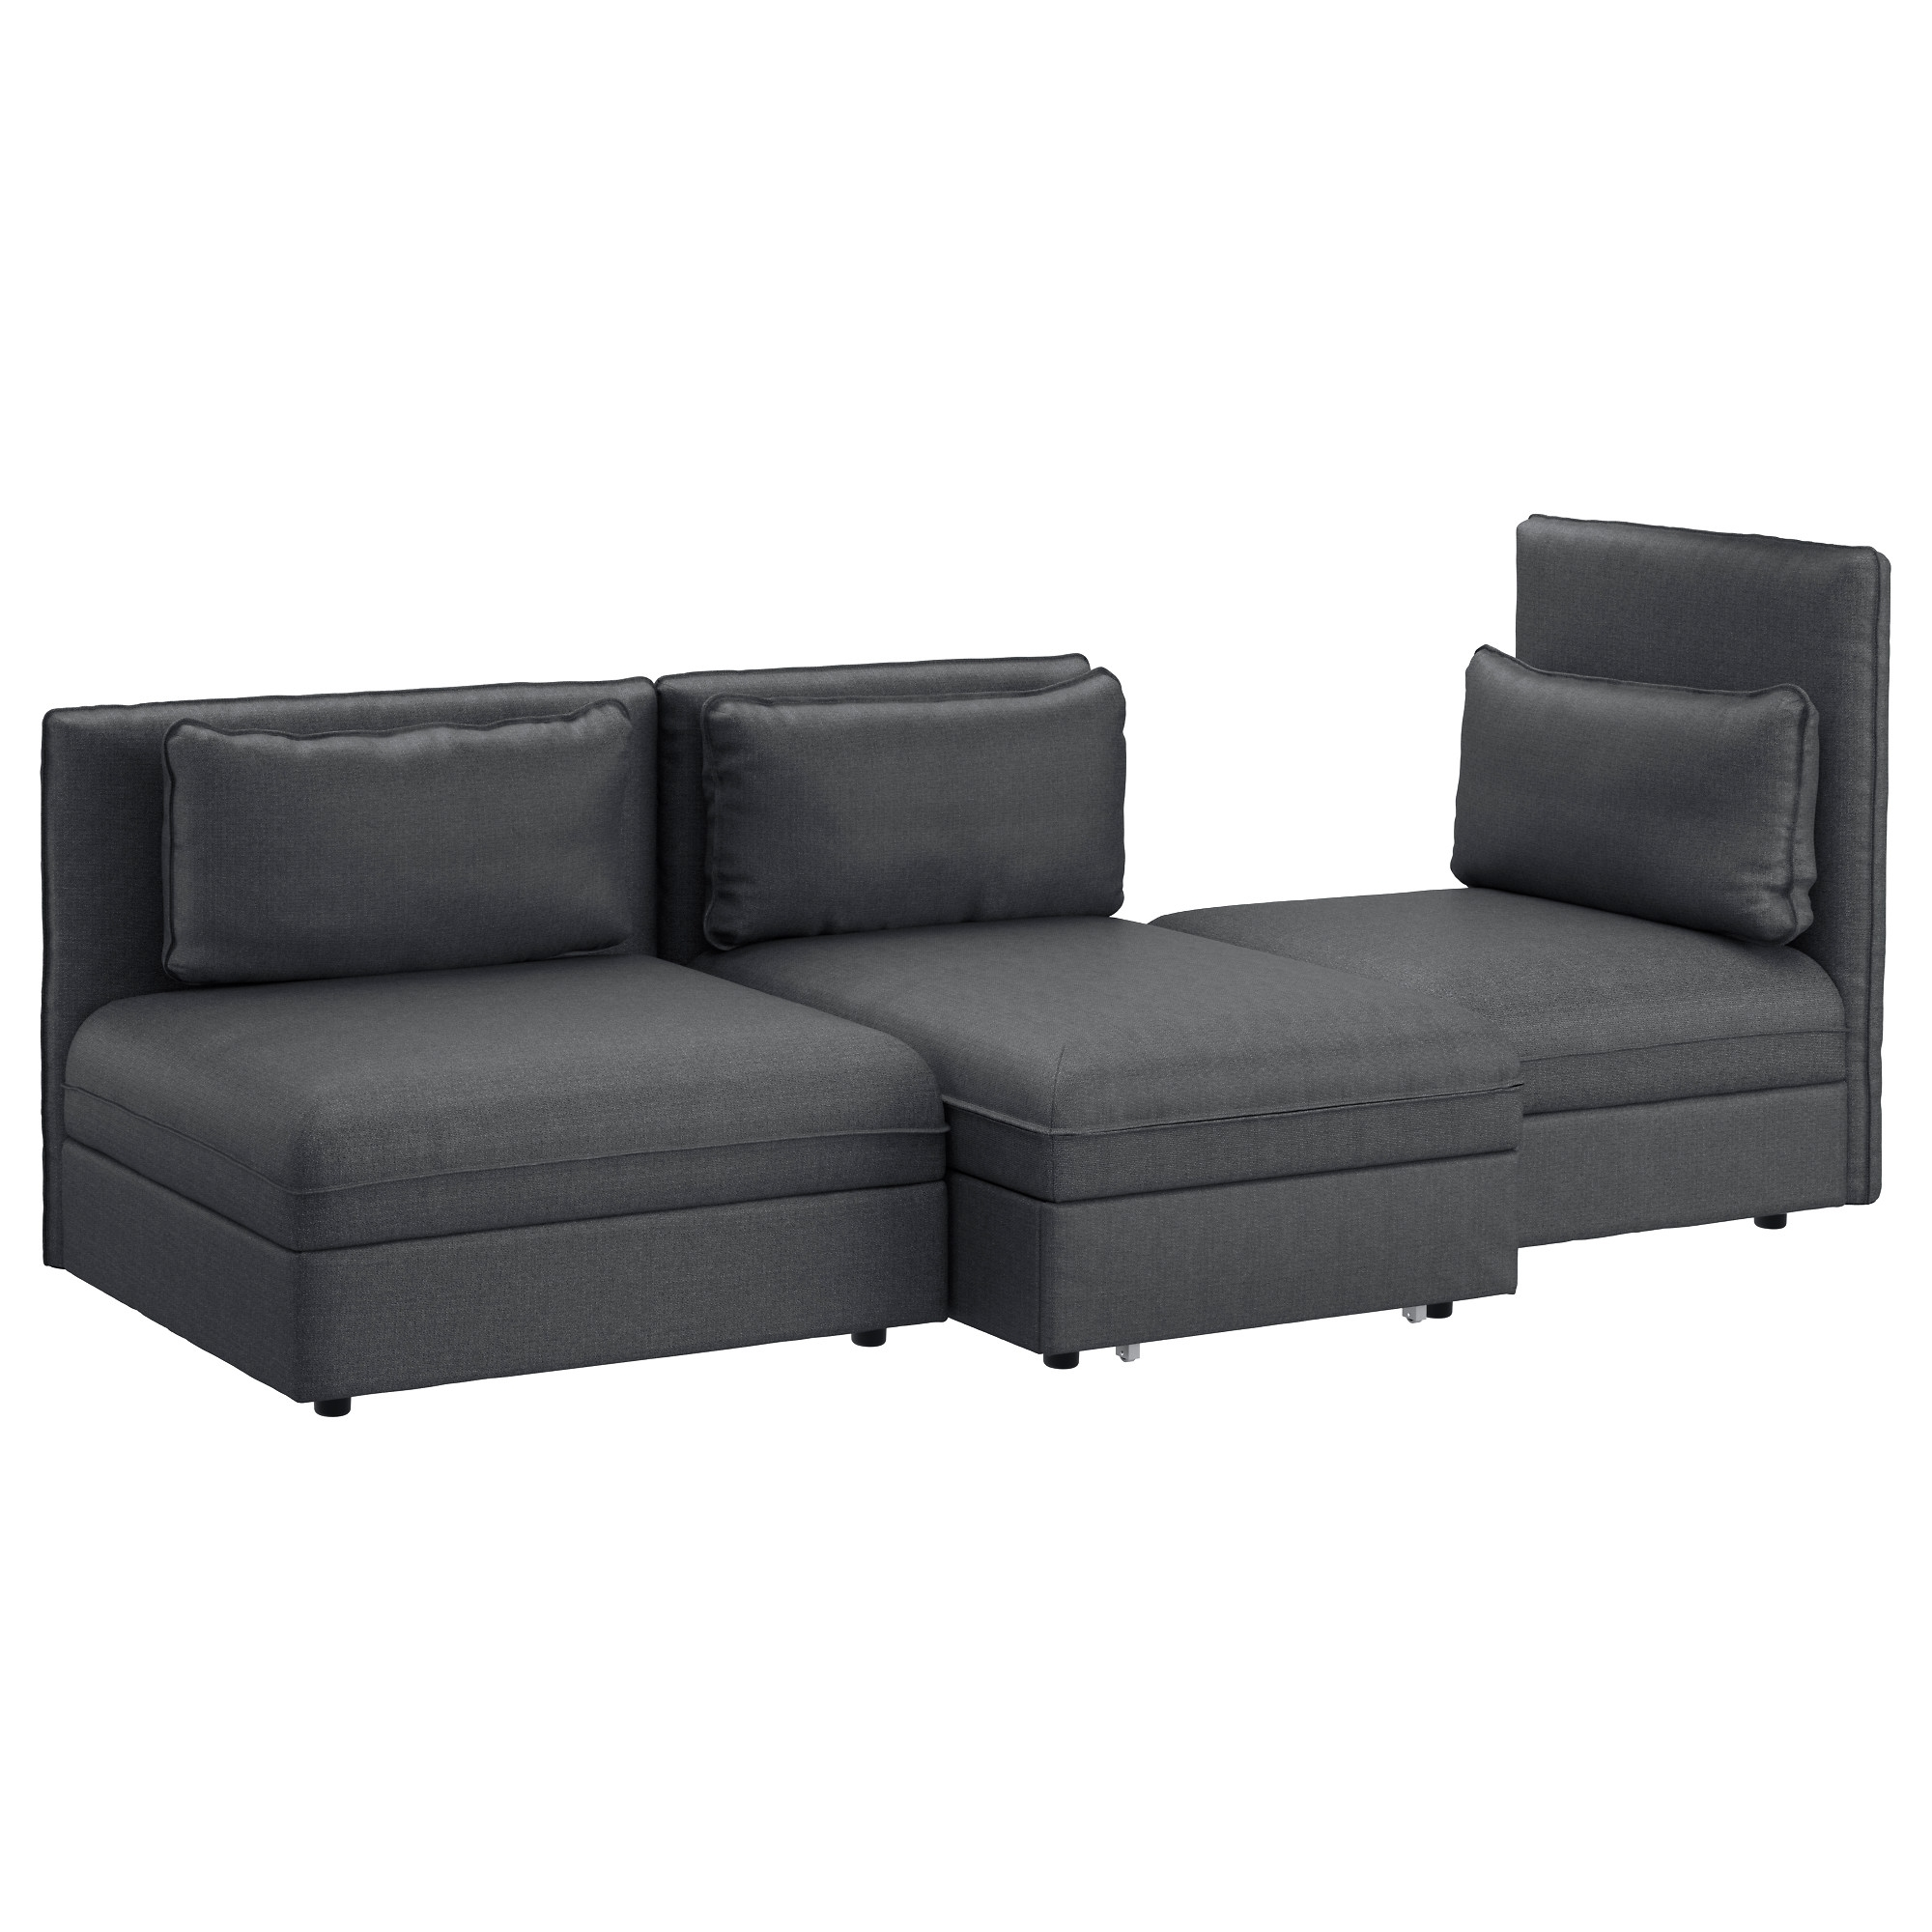 Vallentuna Sleeper Sectional, 3 Seat – Hillared Dark Gray – Ikea Inside Best And Newest Ikea Sectional Sofa Beds (View 14 of 15)